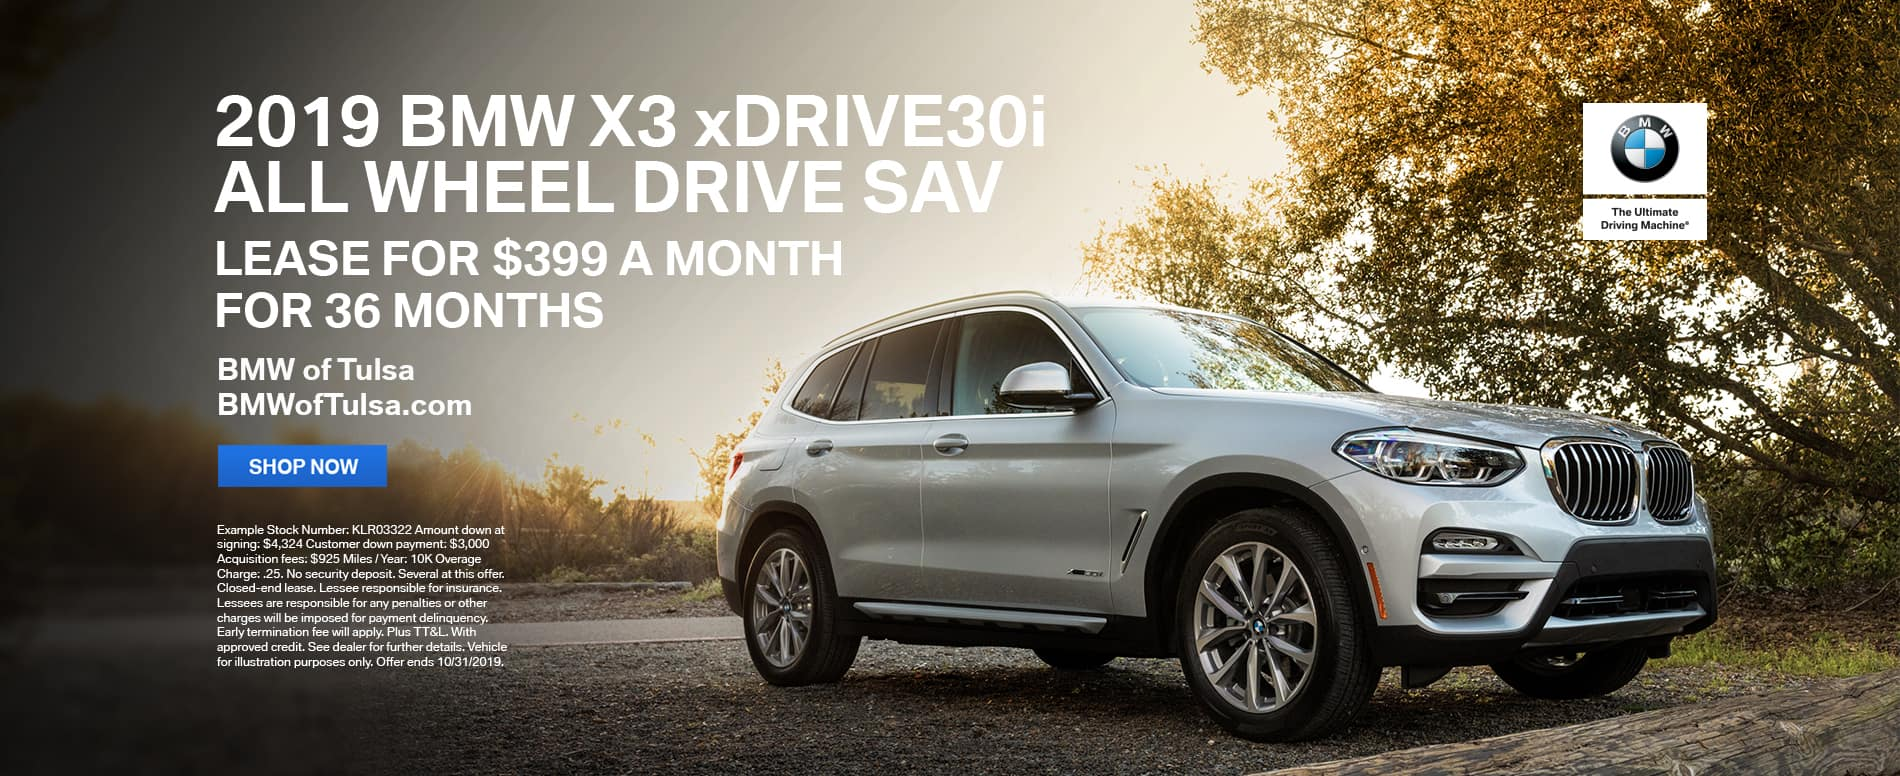 2019_BMW_Tulsa_X3_Lease_Offer